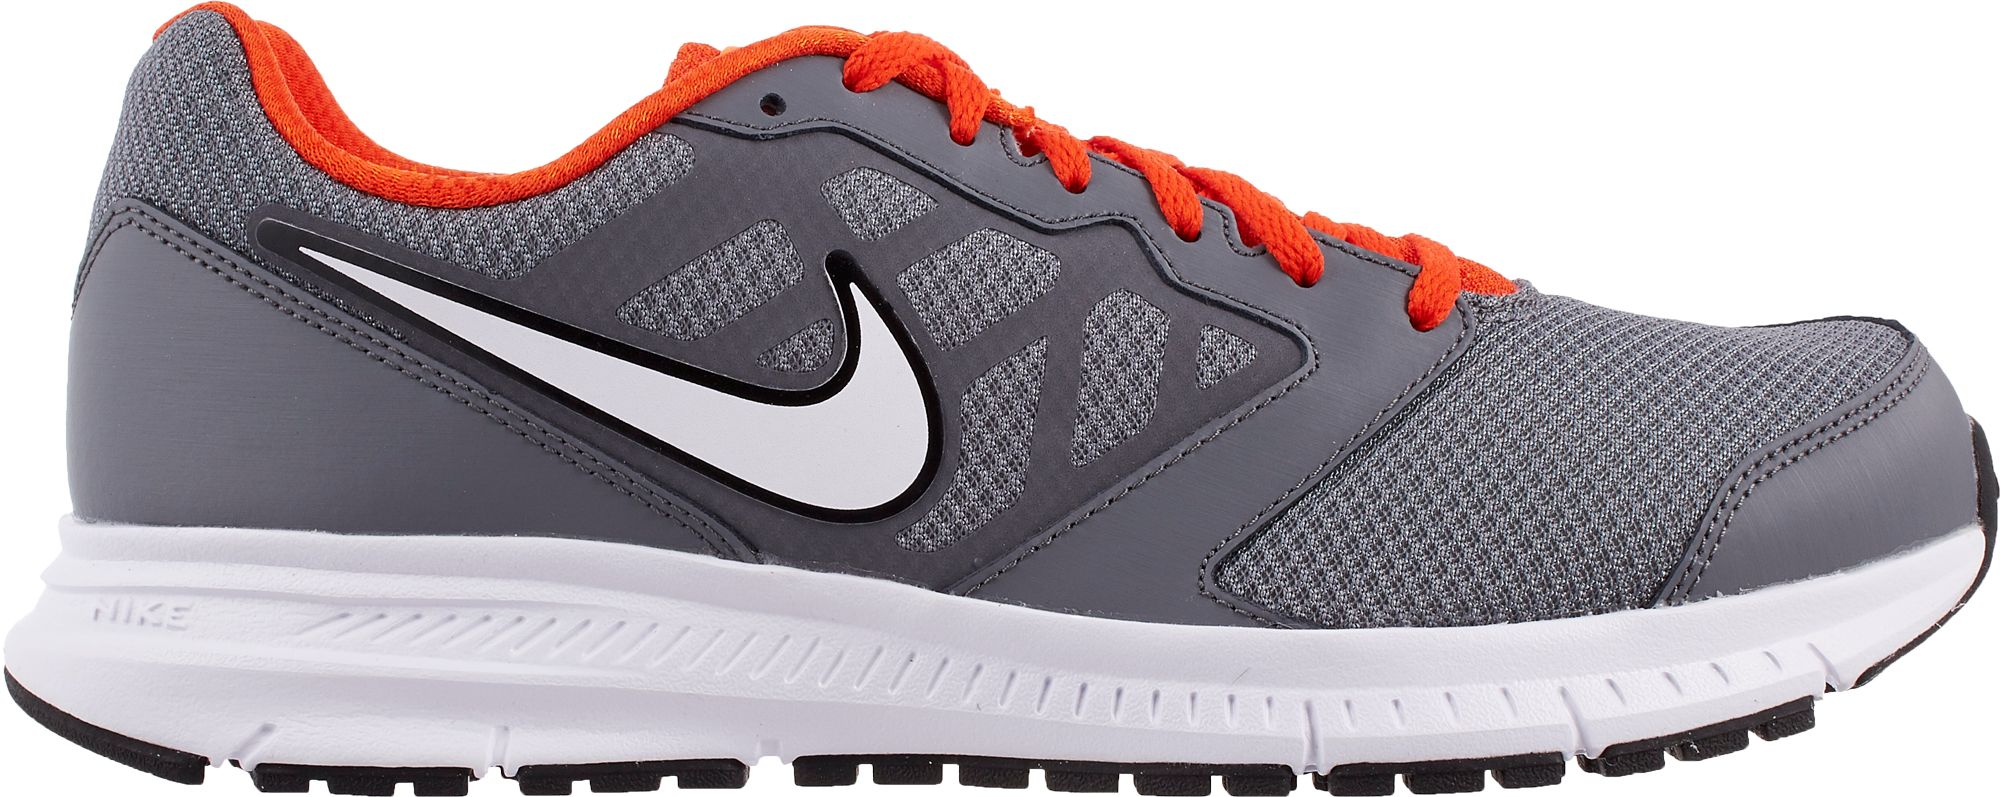 Best Sports Shoes under 2000 - Nike Downshifter 6 MSL Running Shoes